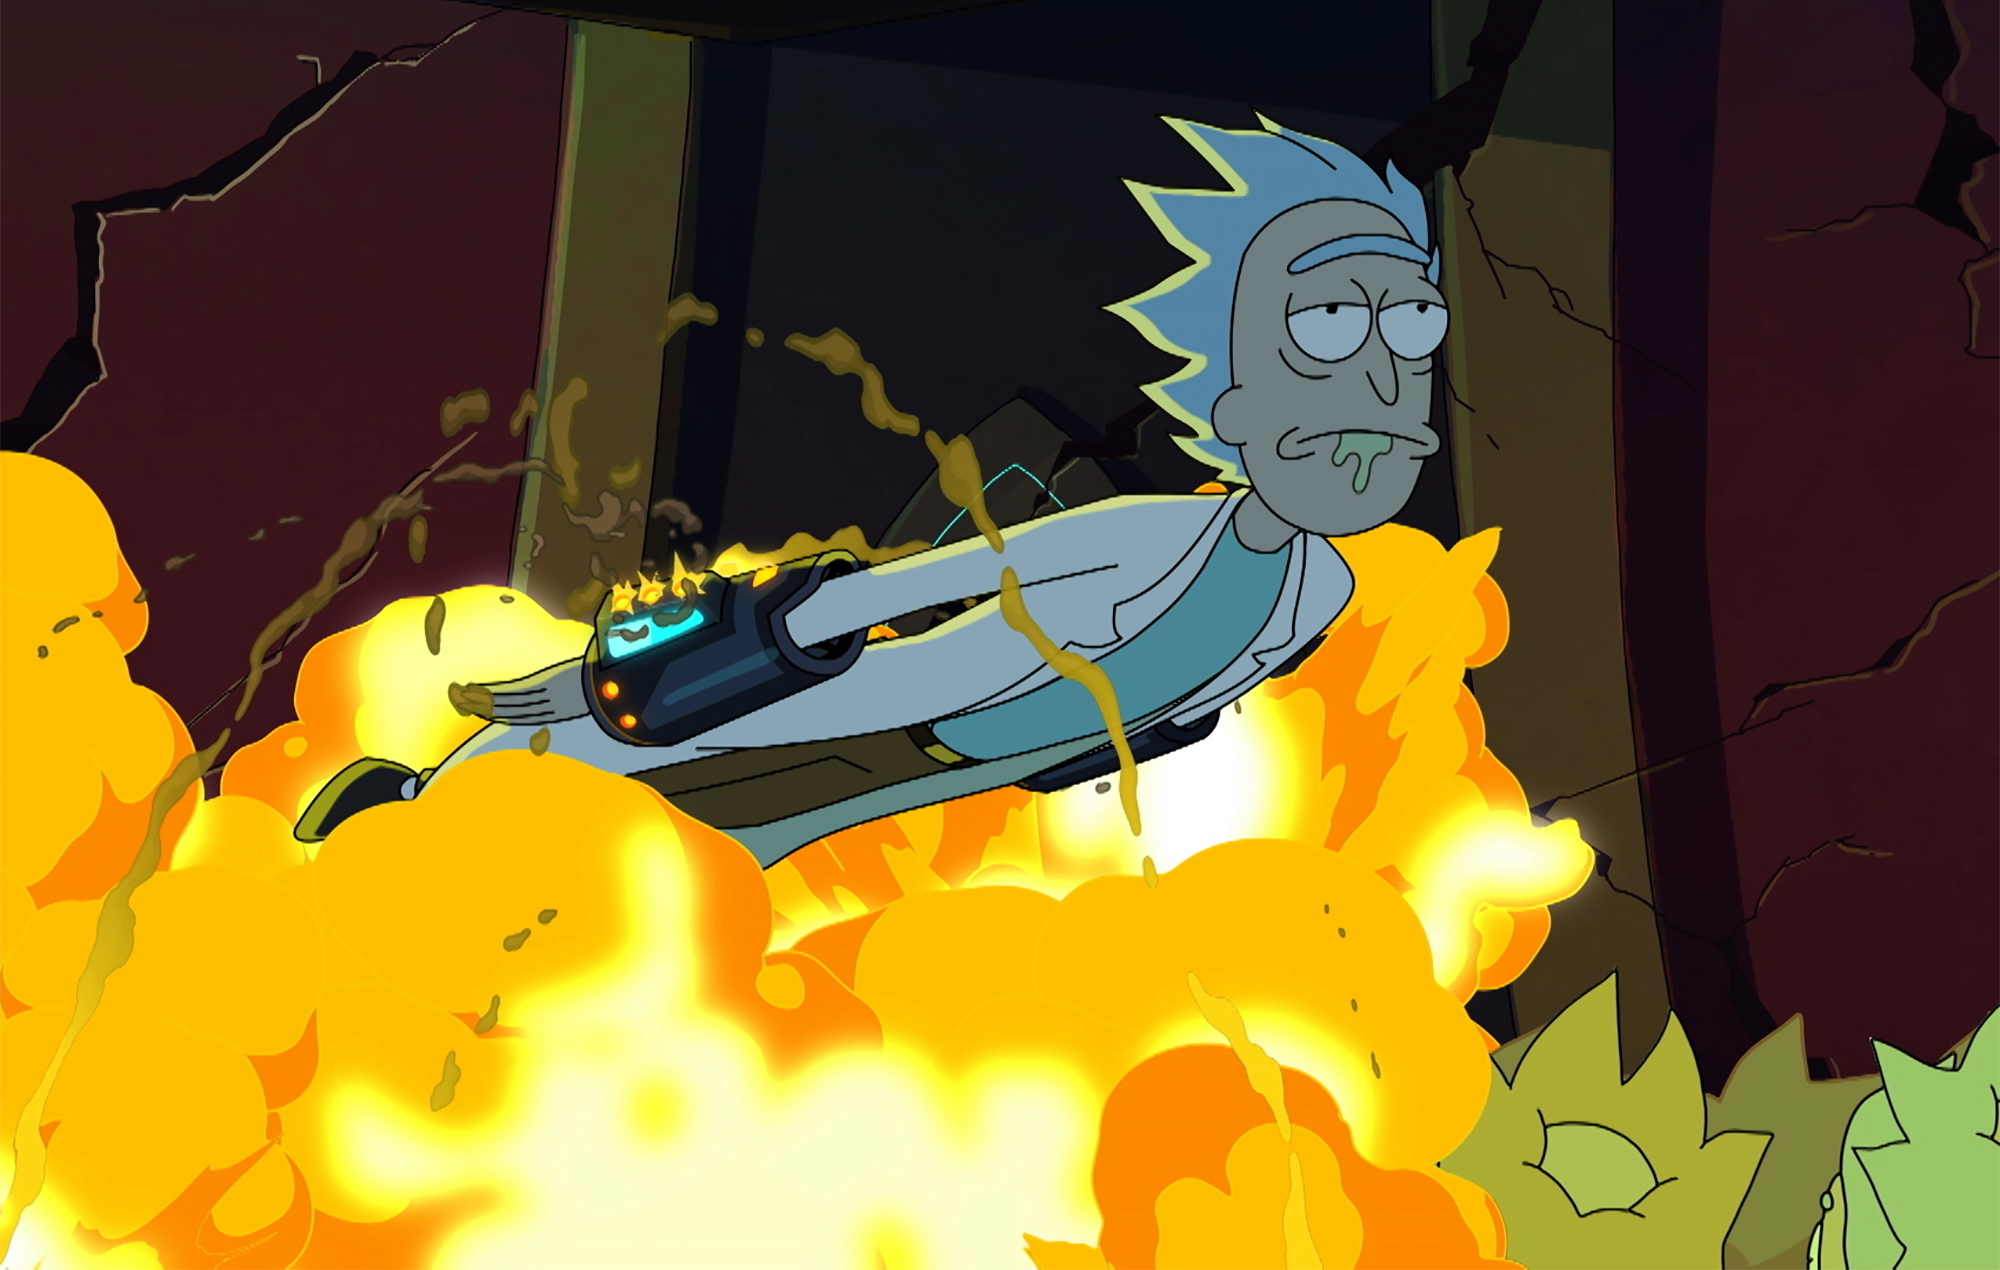 Rick flying away as a hail of explosion decimates a crowd of people underneath him.